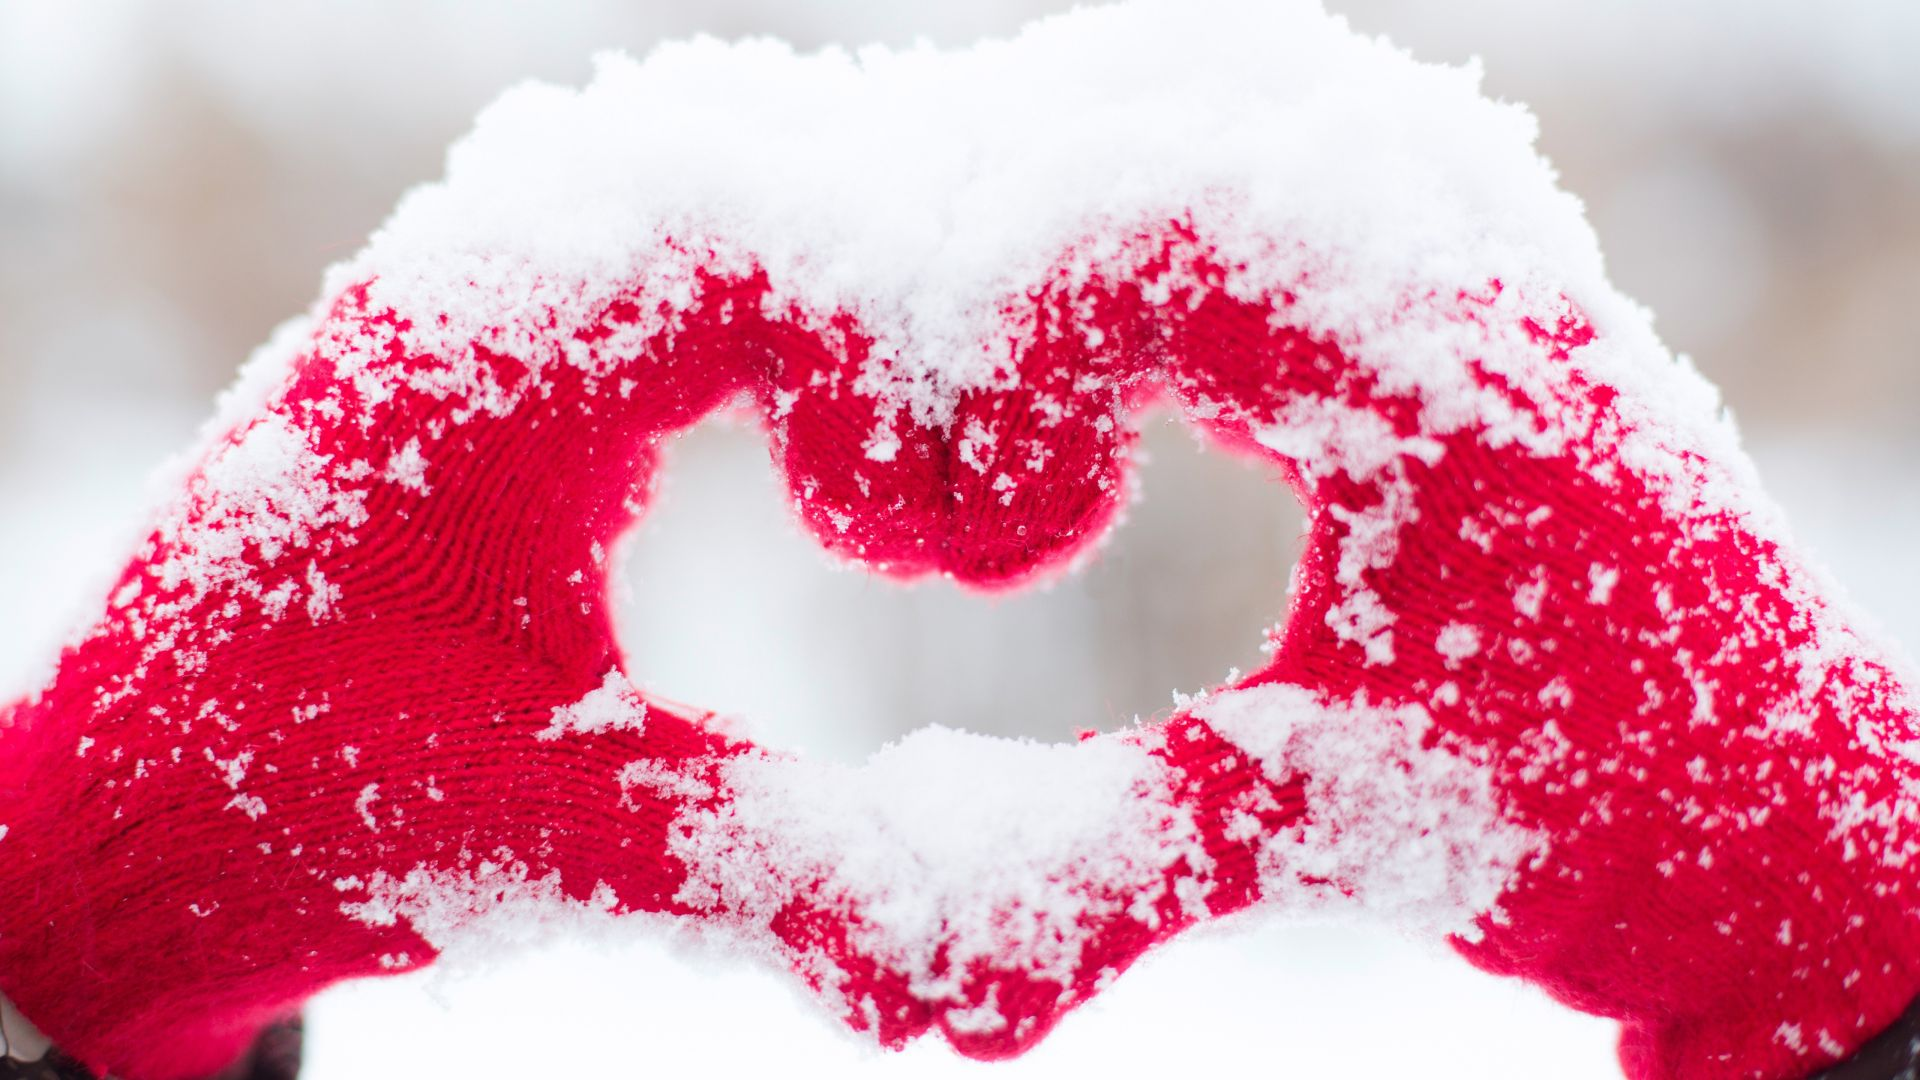 фото любовь, сердце, love image, heart, snow, 4k (horizontal)